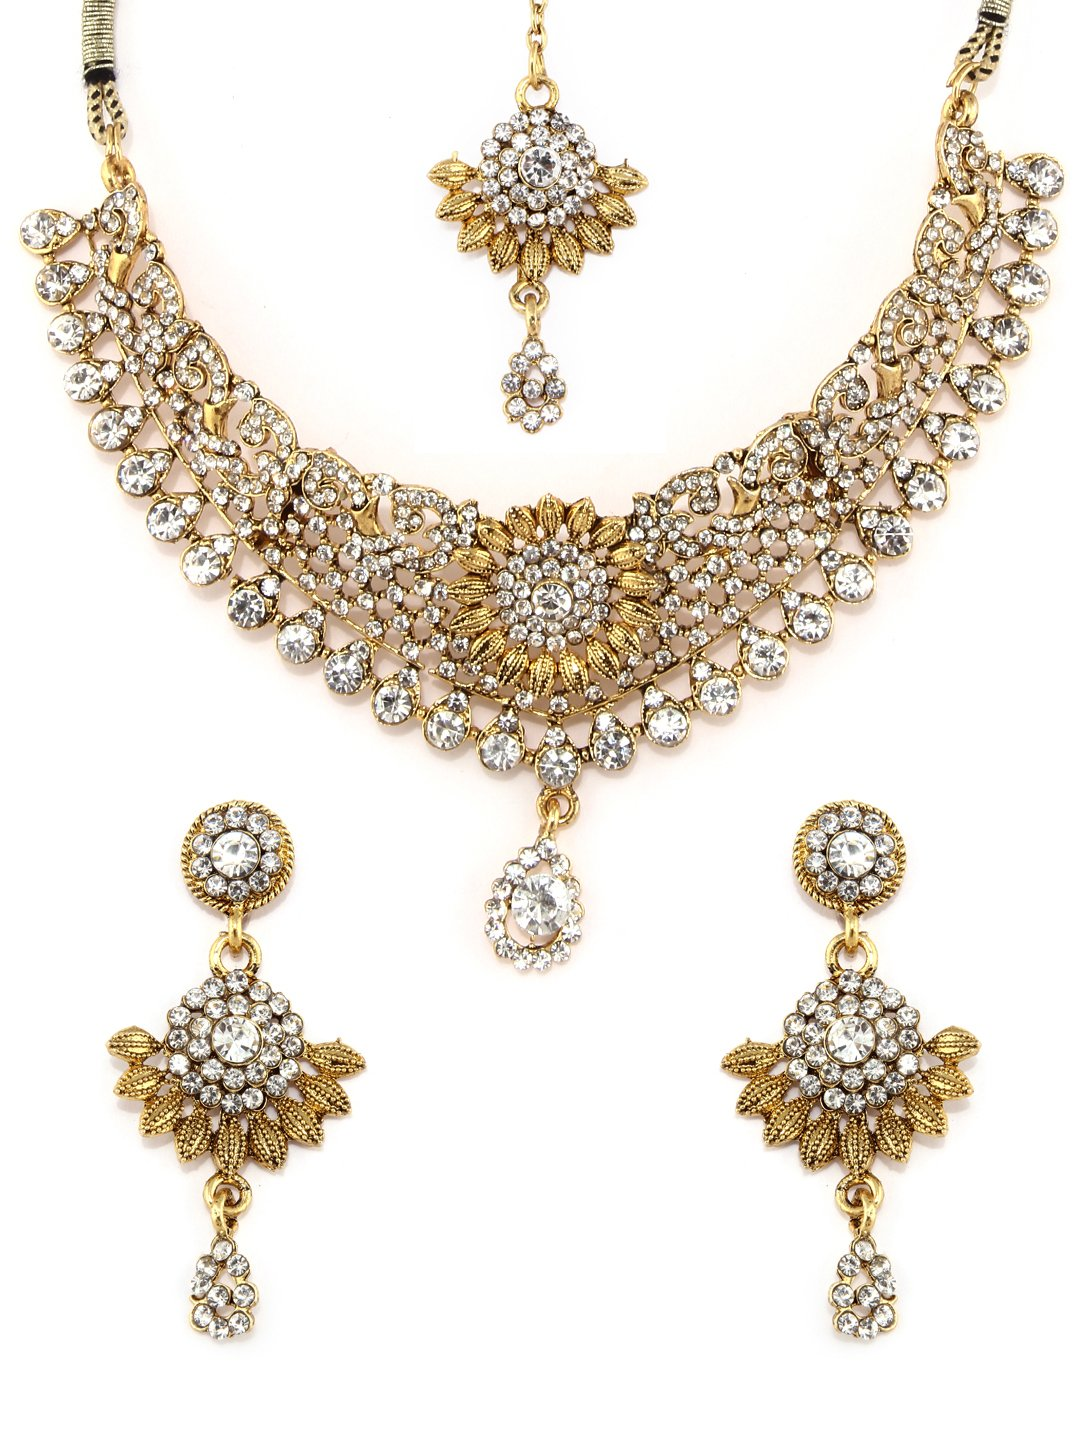 Rubans Gold Plated Traditional Indian Jewelry Set Bollywood Padmavati Ethnic Wedding Bridal Handcrafted Filigree with Pearl and Rhinestone Designer Necklace Set with Maang Tikka for Women